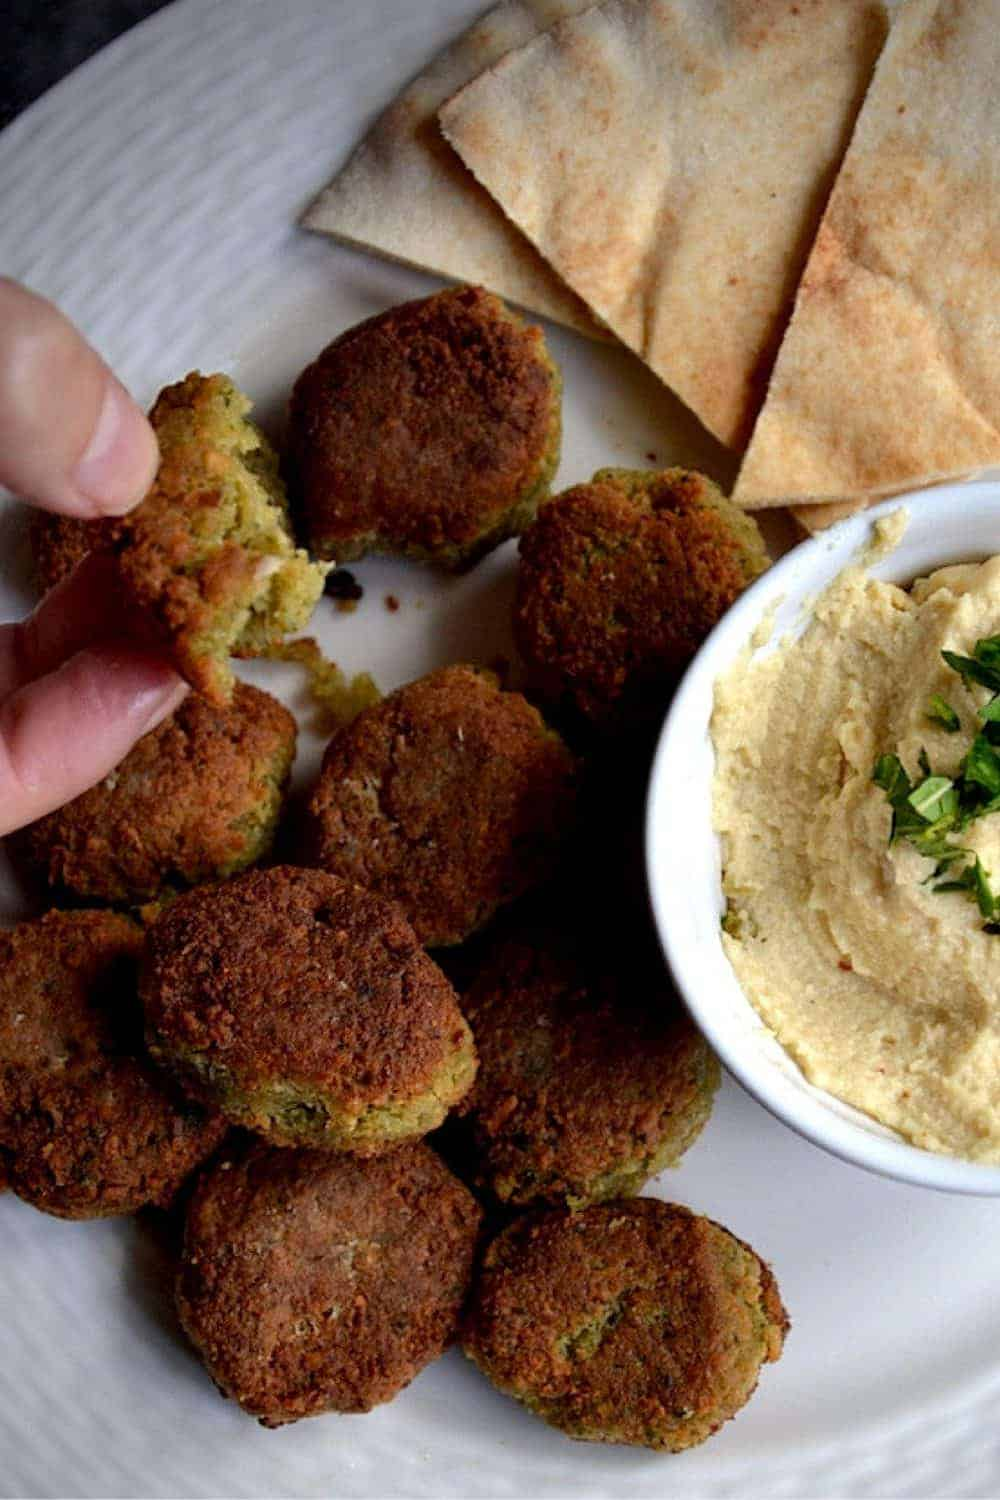 The best Original Falafel with Chickpeas | Middle East, Vegan and GF